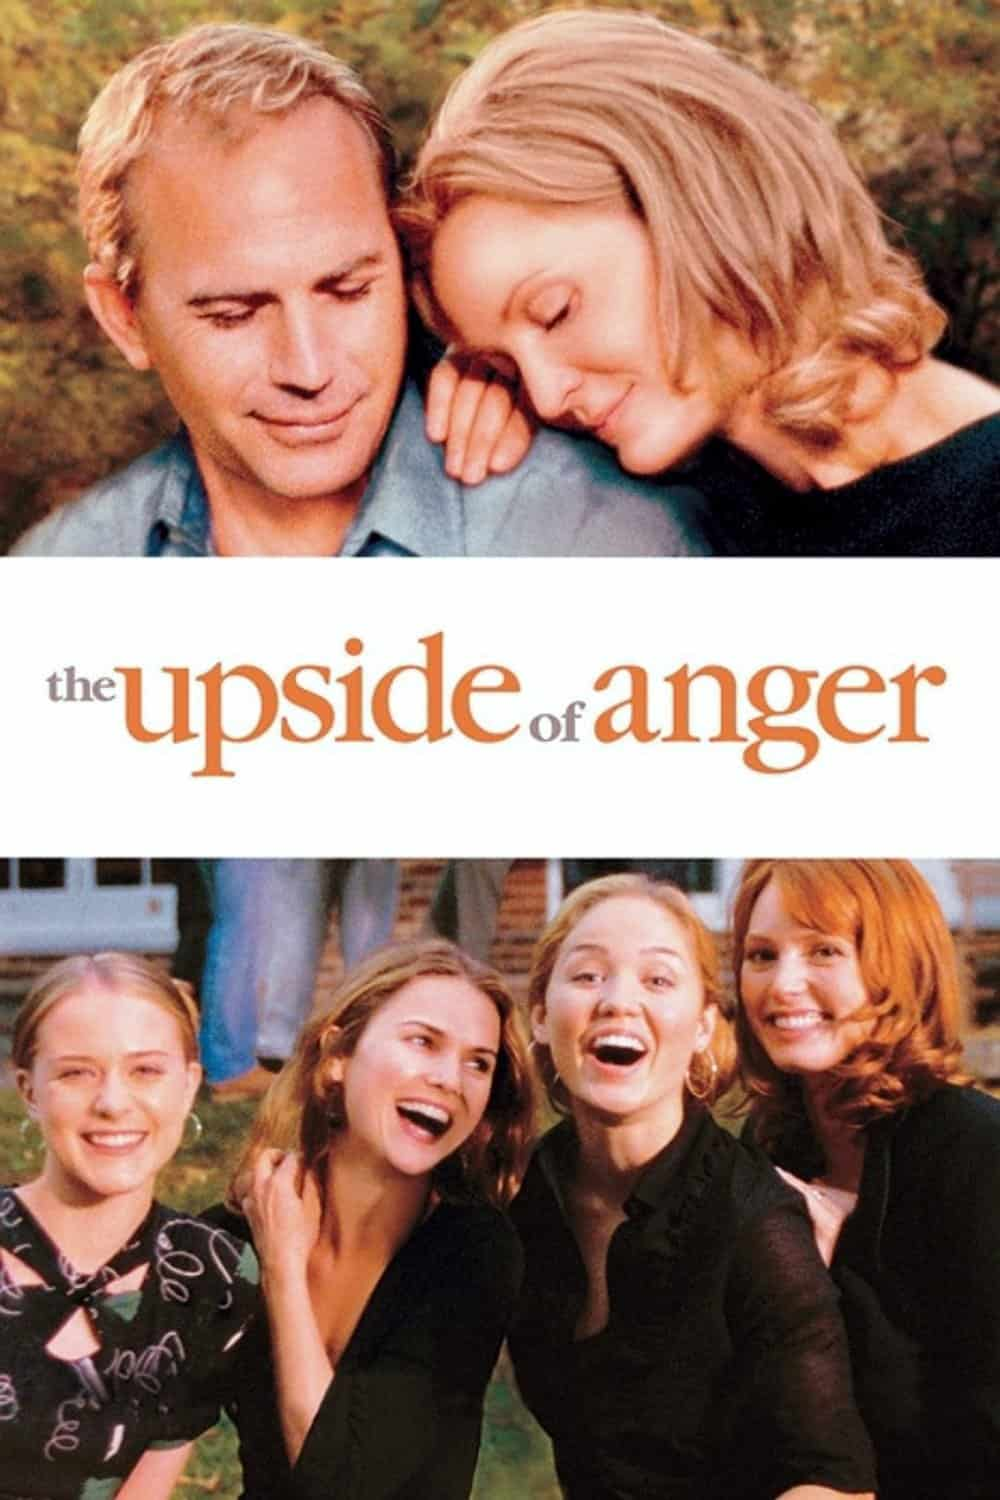 The Upside of Anger, 2005